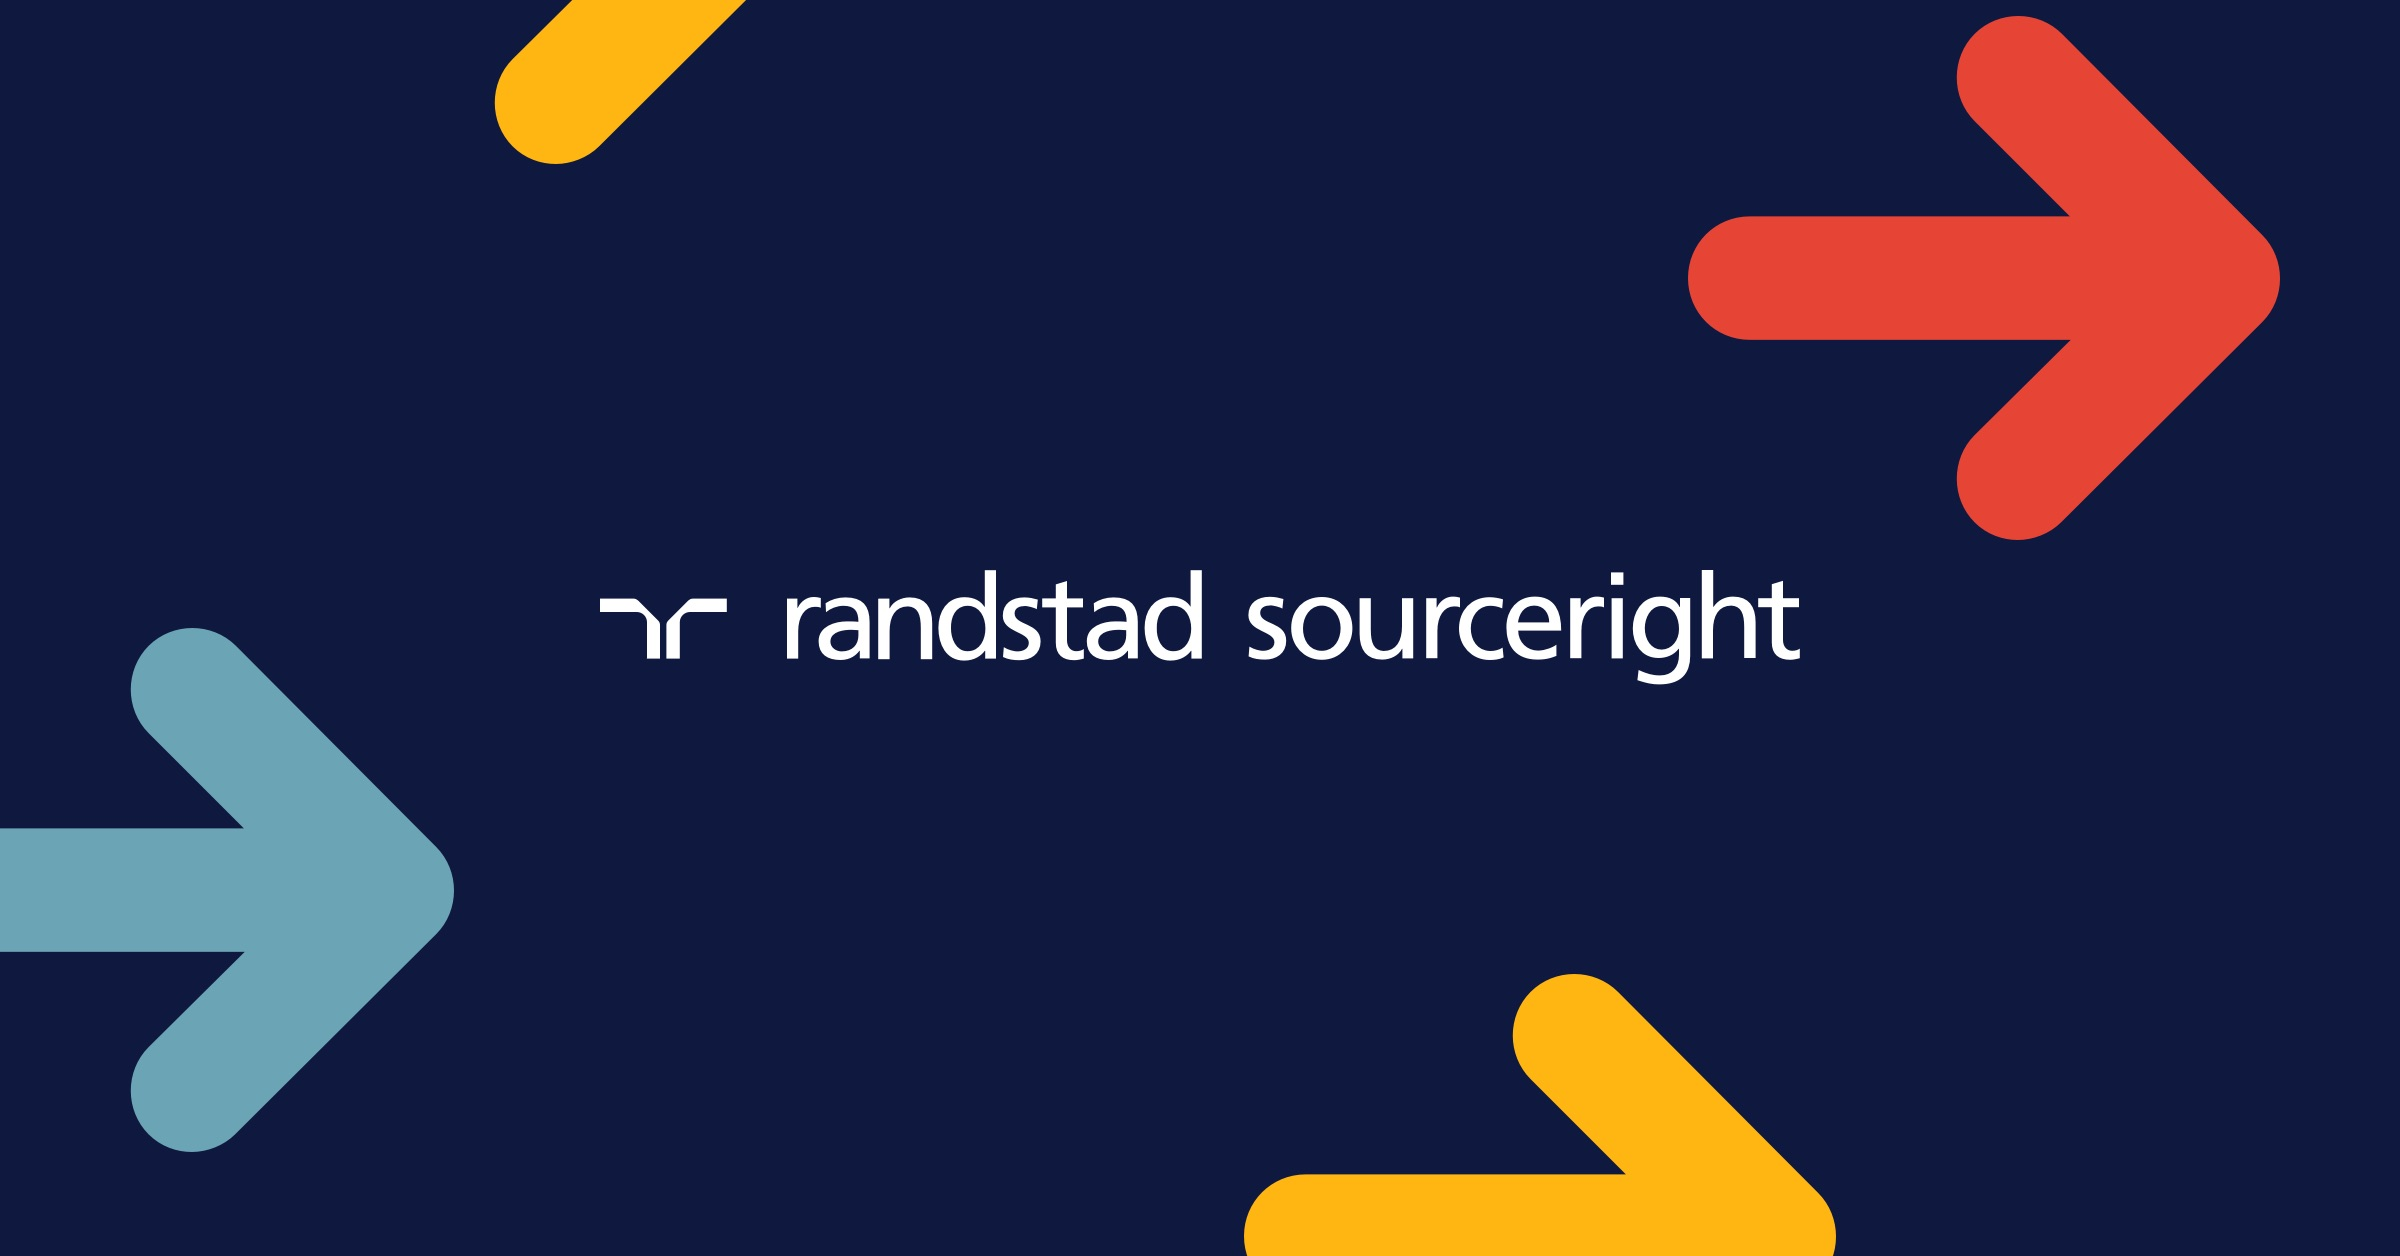 Randstad Sourceright: A global, people first business starts with their own employees